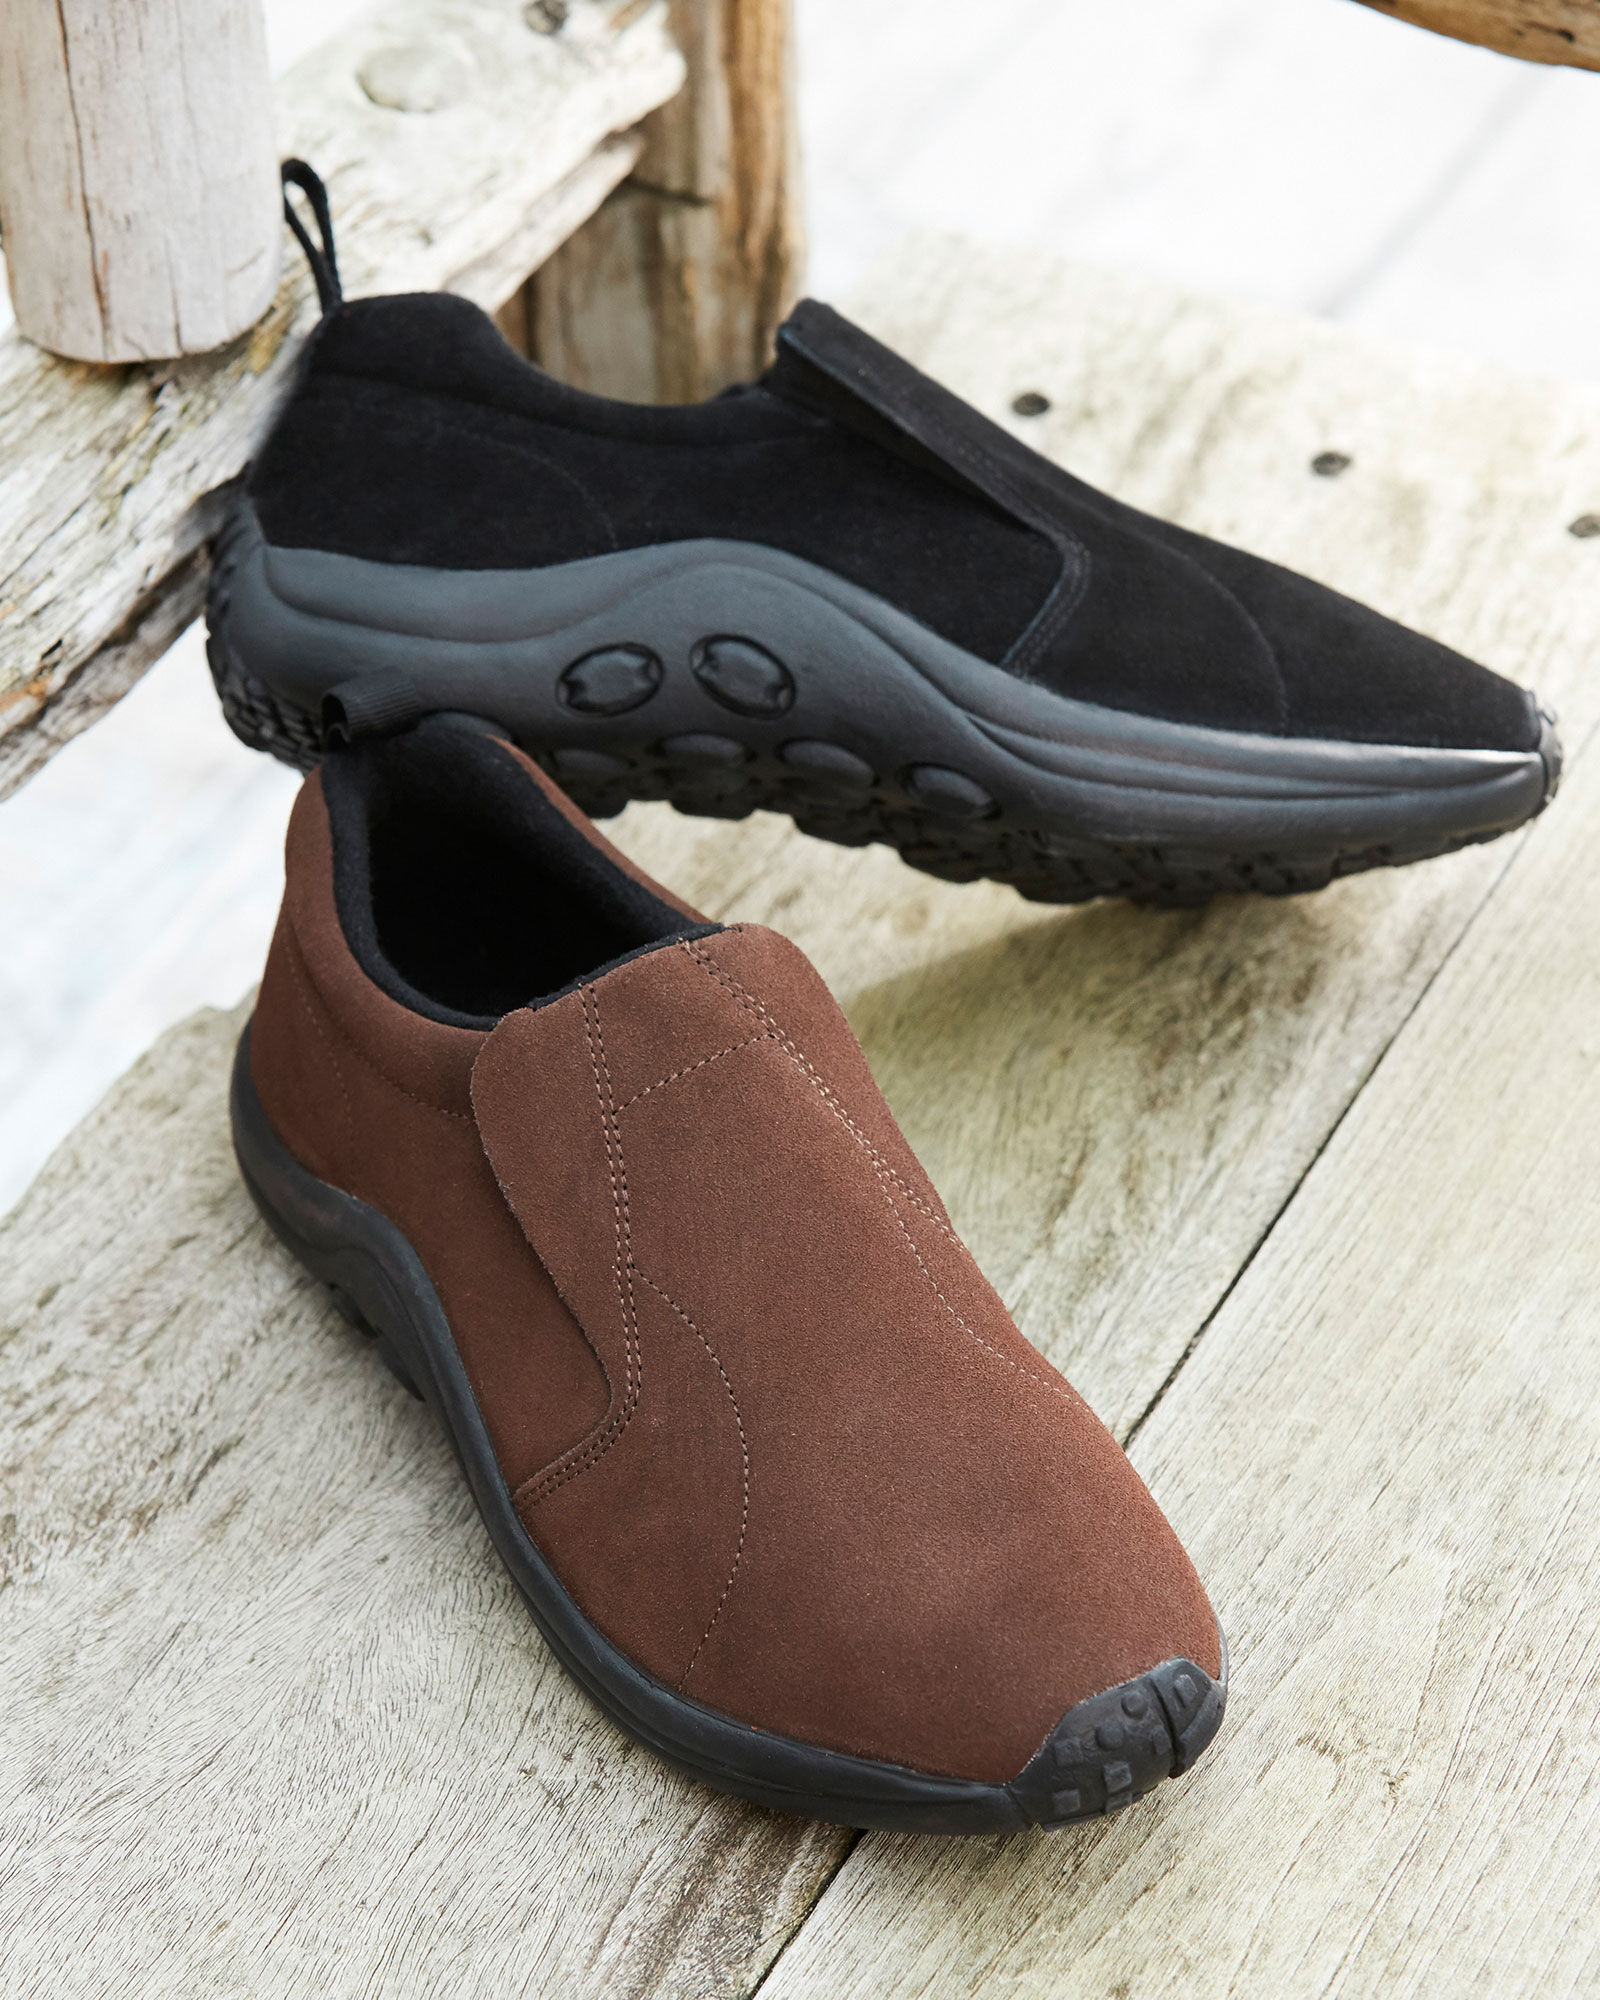 Wide Fit Suede Slip-ons at Cotton Traders